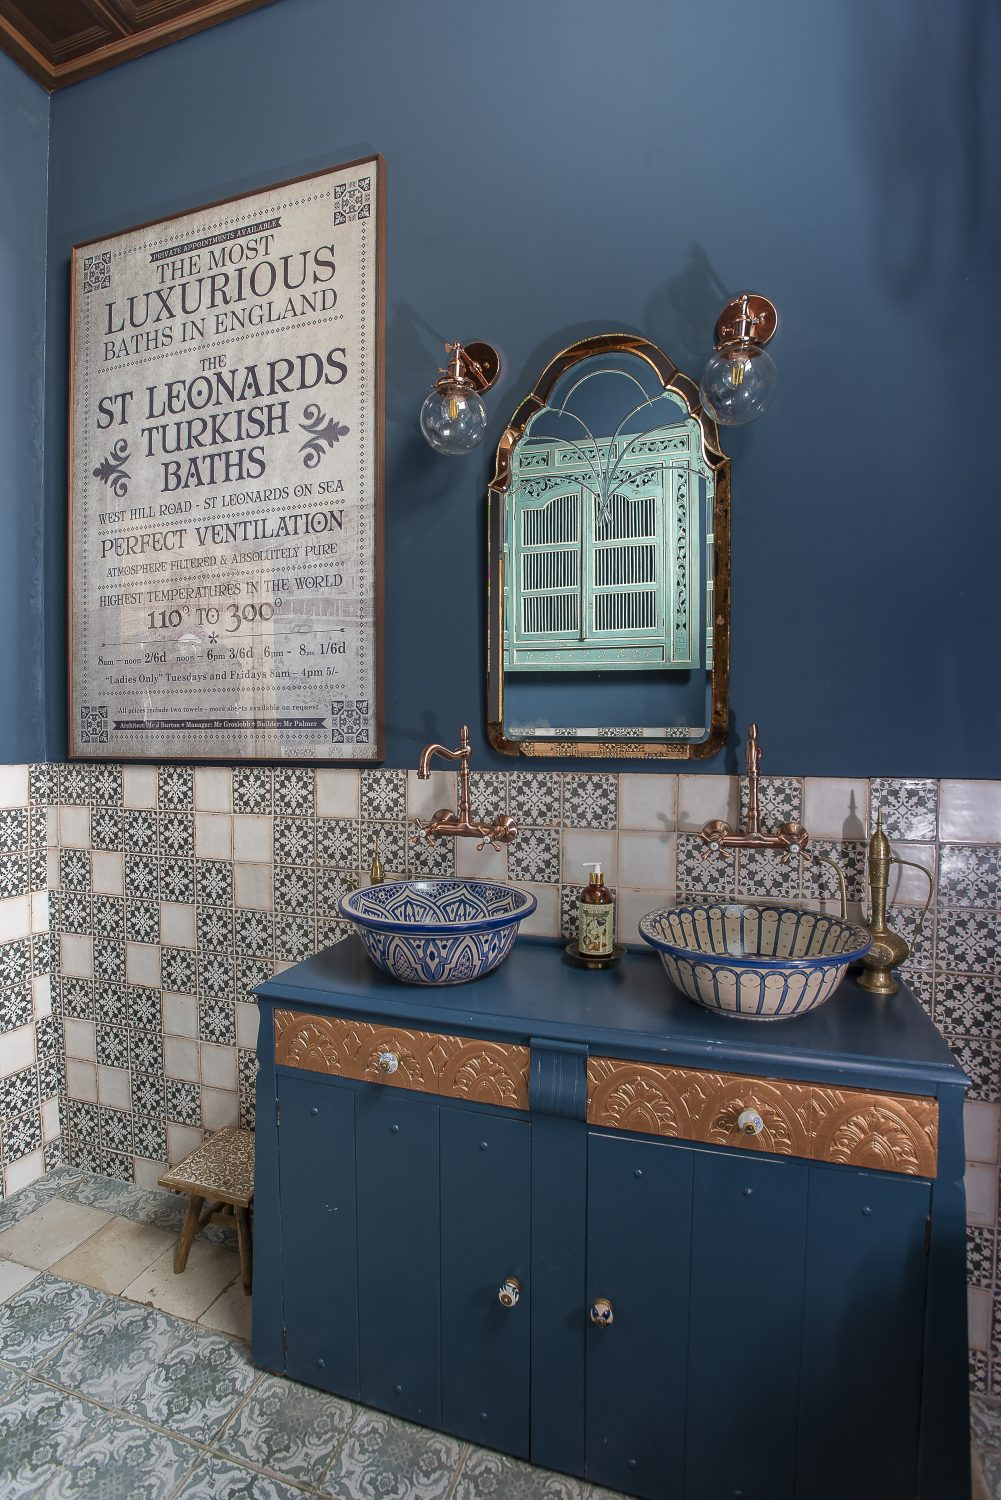 Laurie sourced the copper bath in the Turkish-bath inspired guest bathroom directly from the makers in Morocco